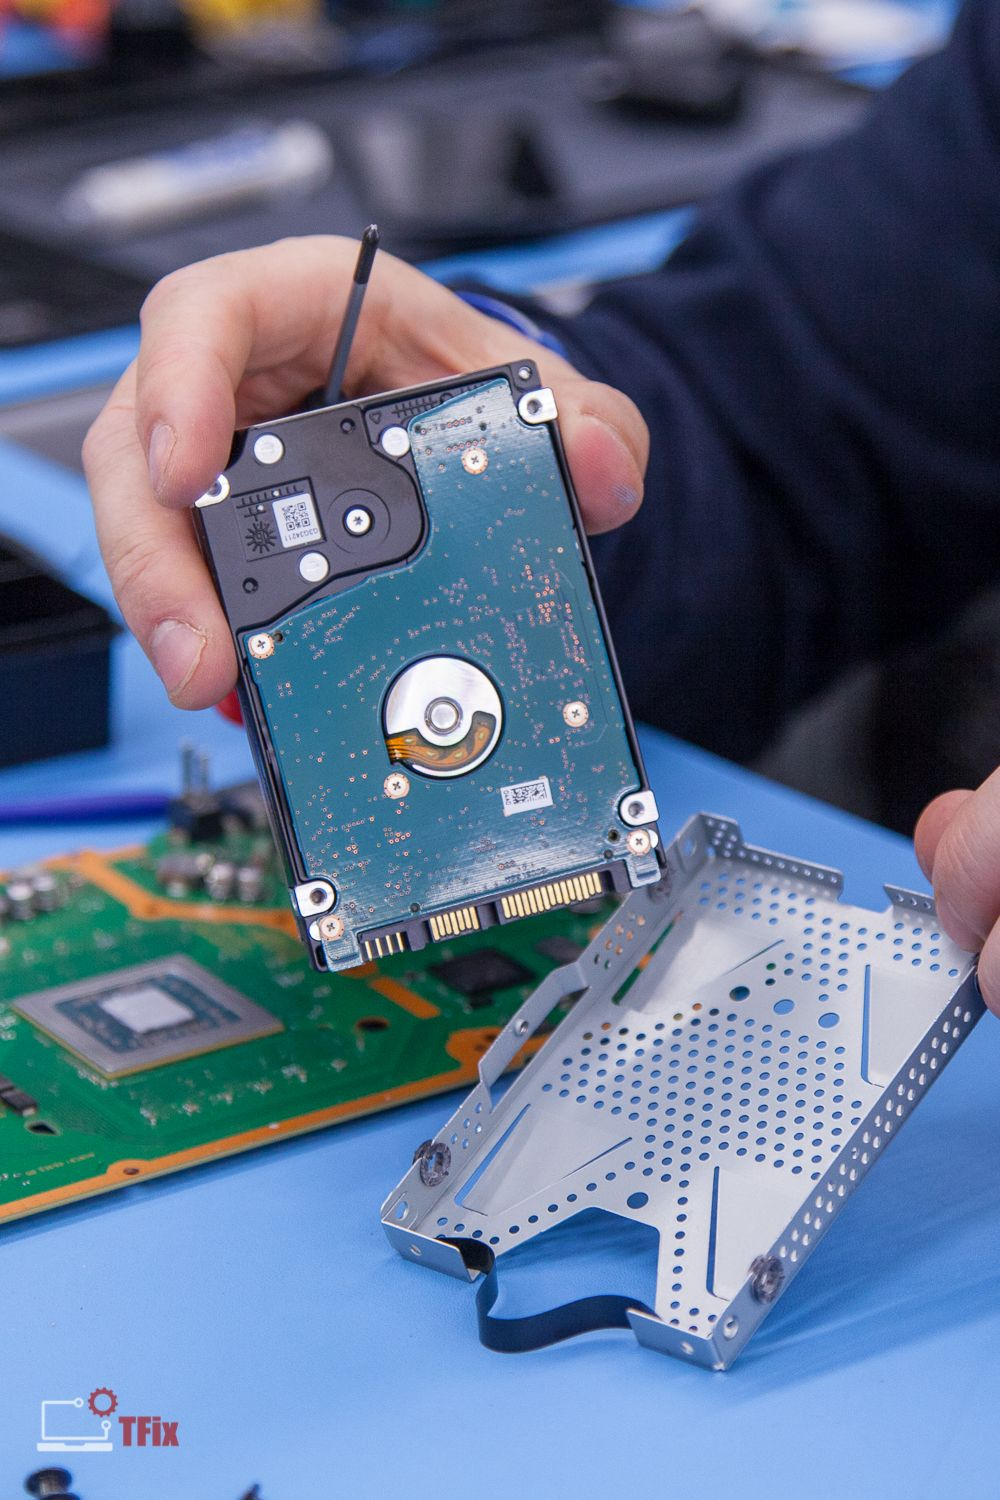 Today, we're working on PS4 hard drive replacement, which failed